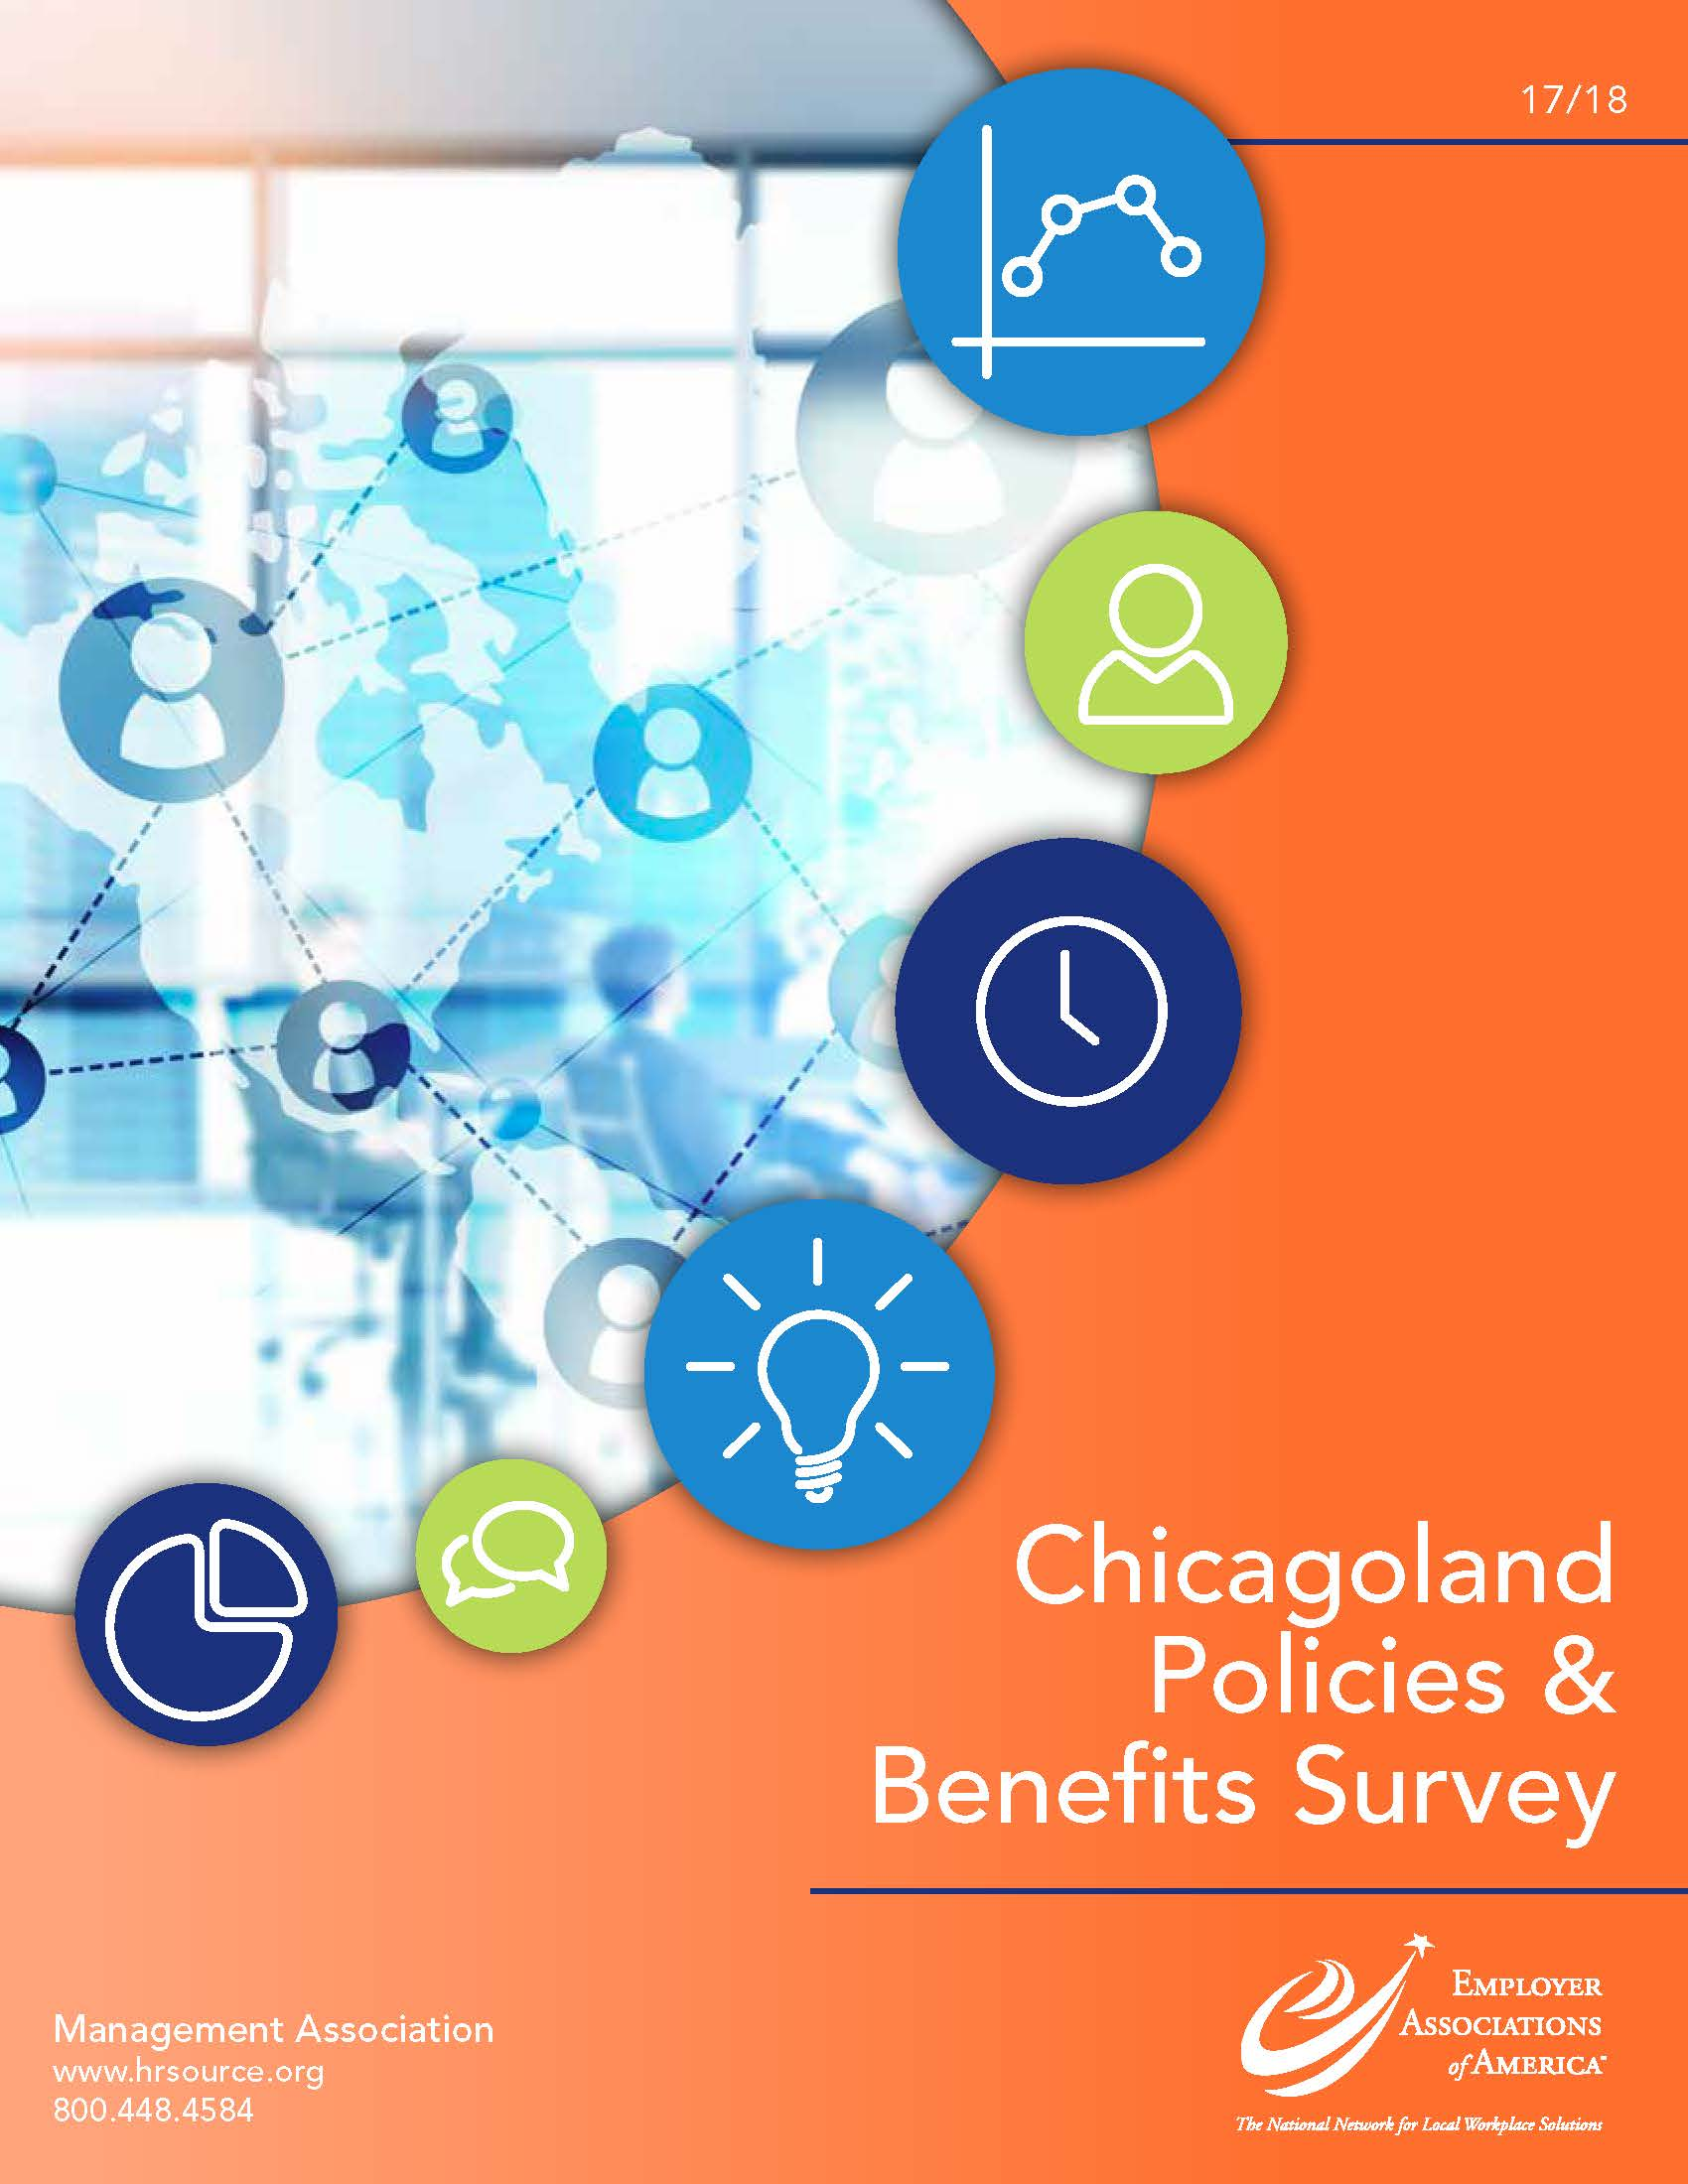 2017/2018 Chicagoland Policies & Benefits Survey